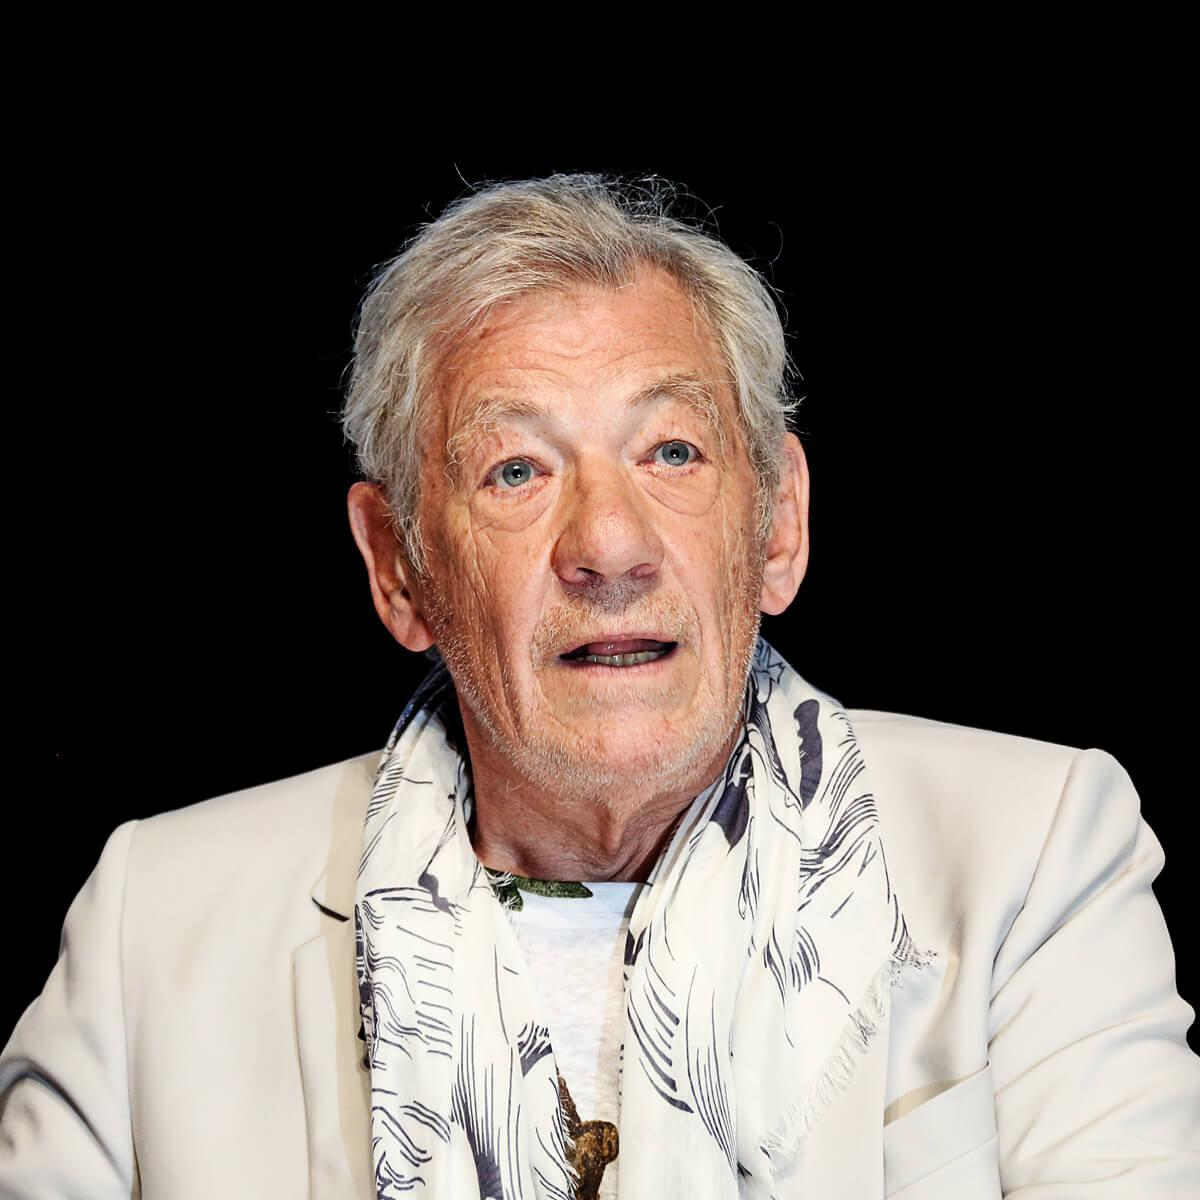 Photograph of Actor, Sir Ian McKellen at Cannes Lions by Julian Hanford